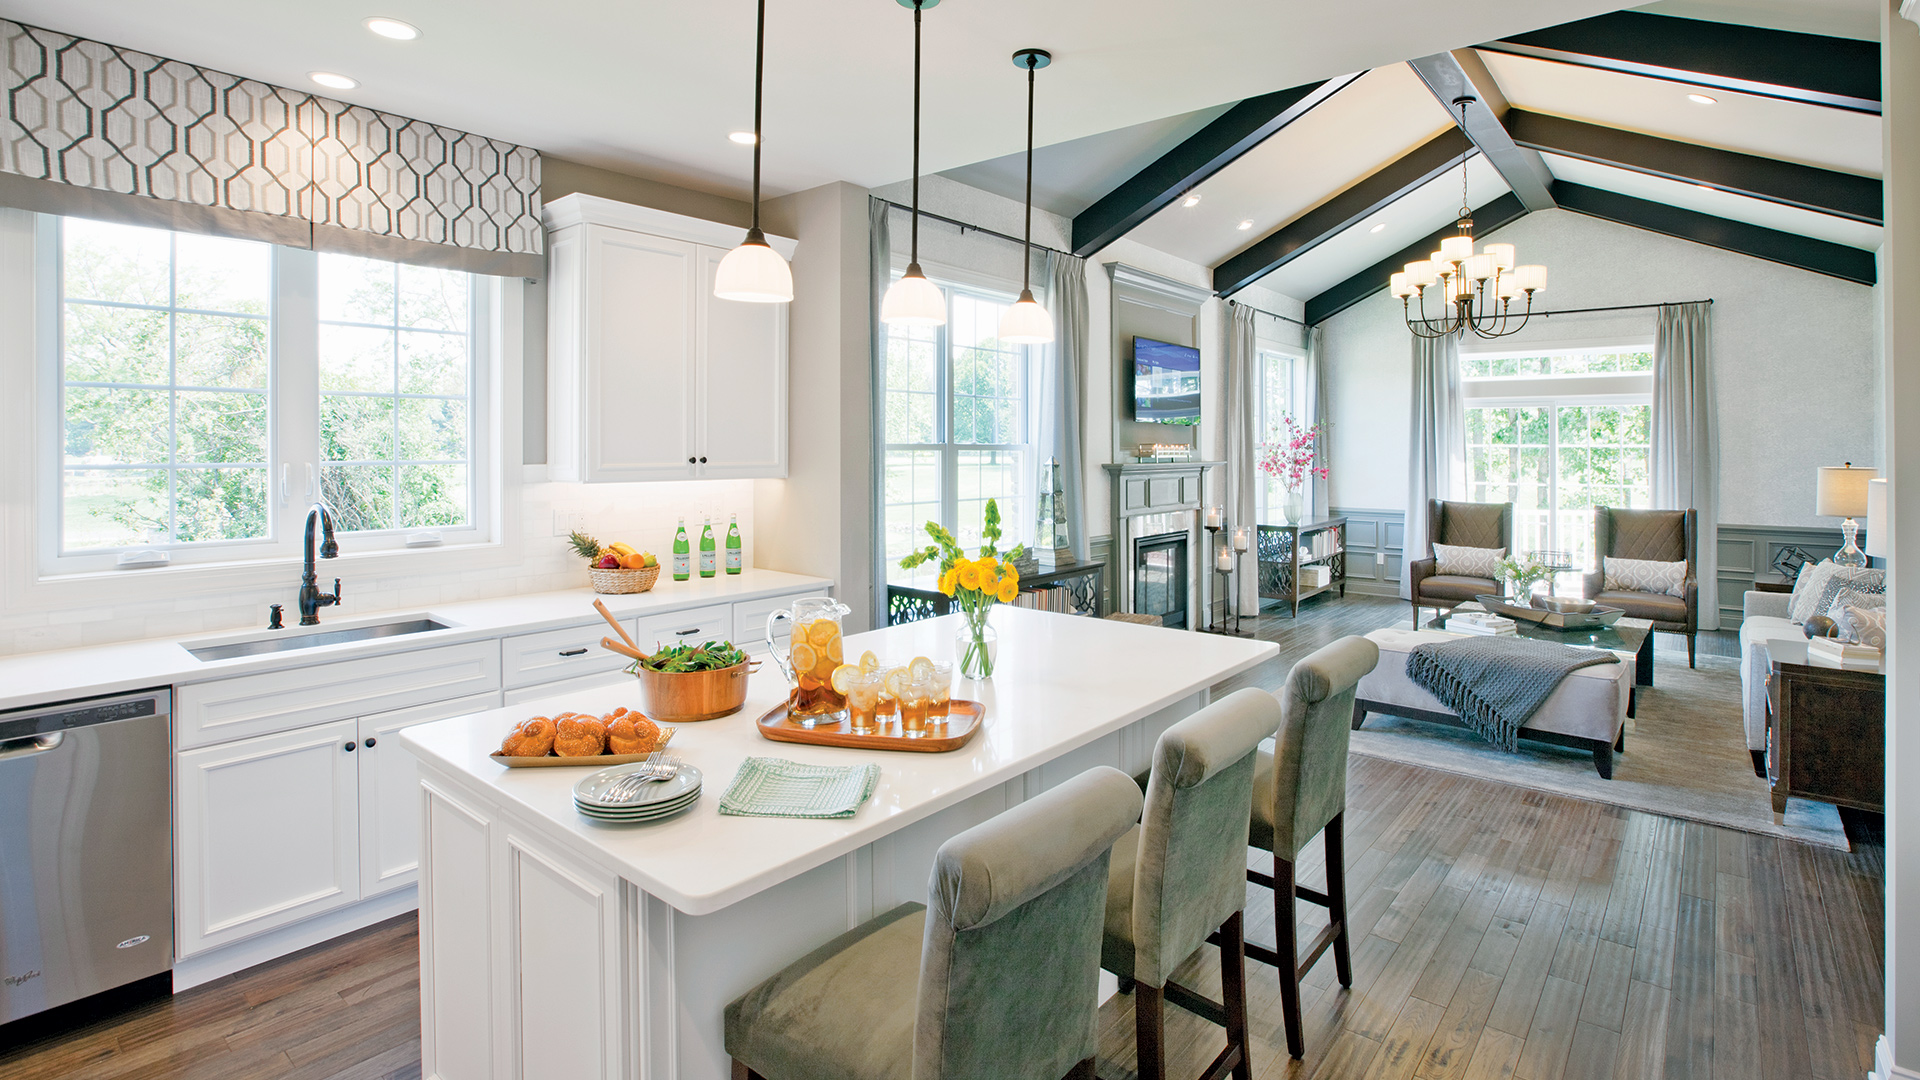 New Luxury Homes For Sale In Millis Ma